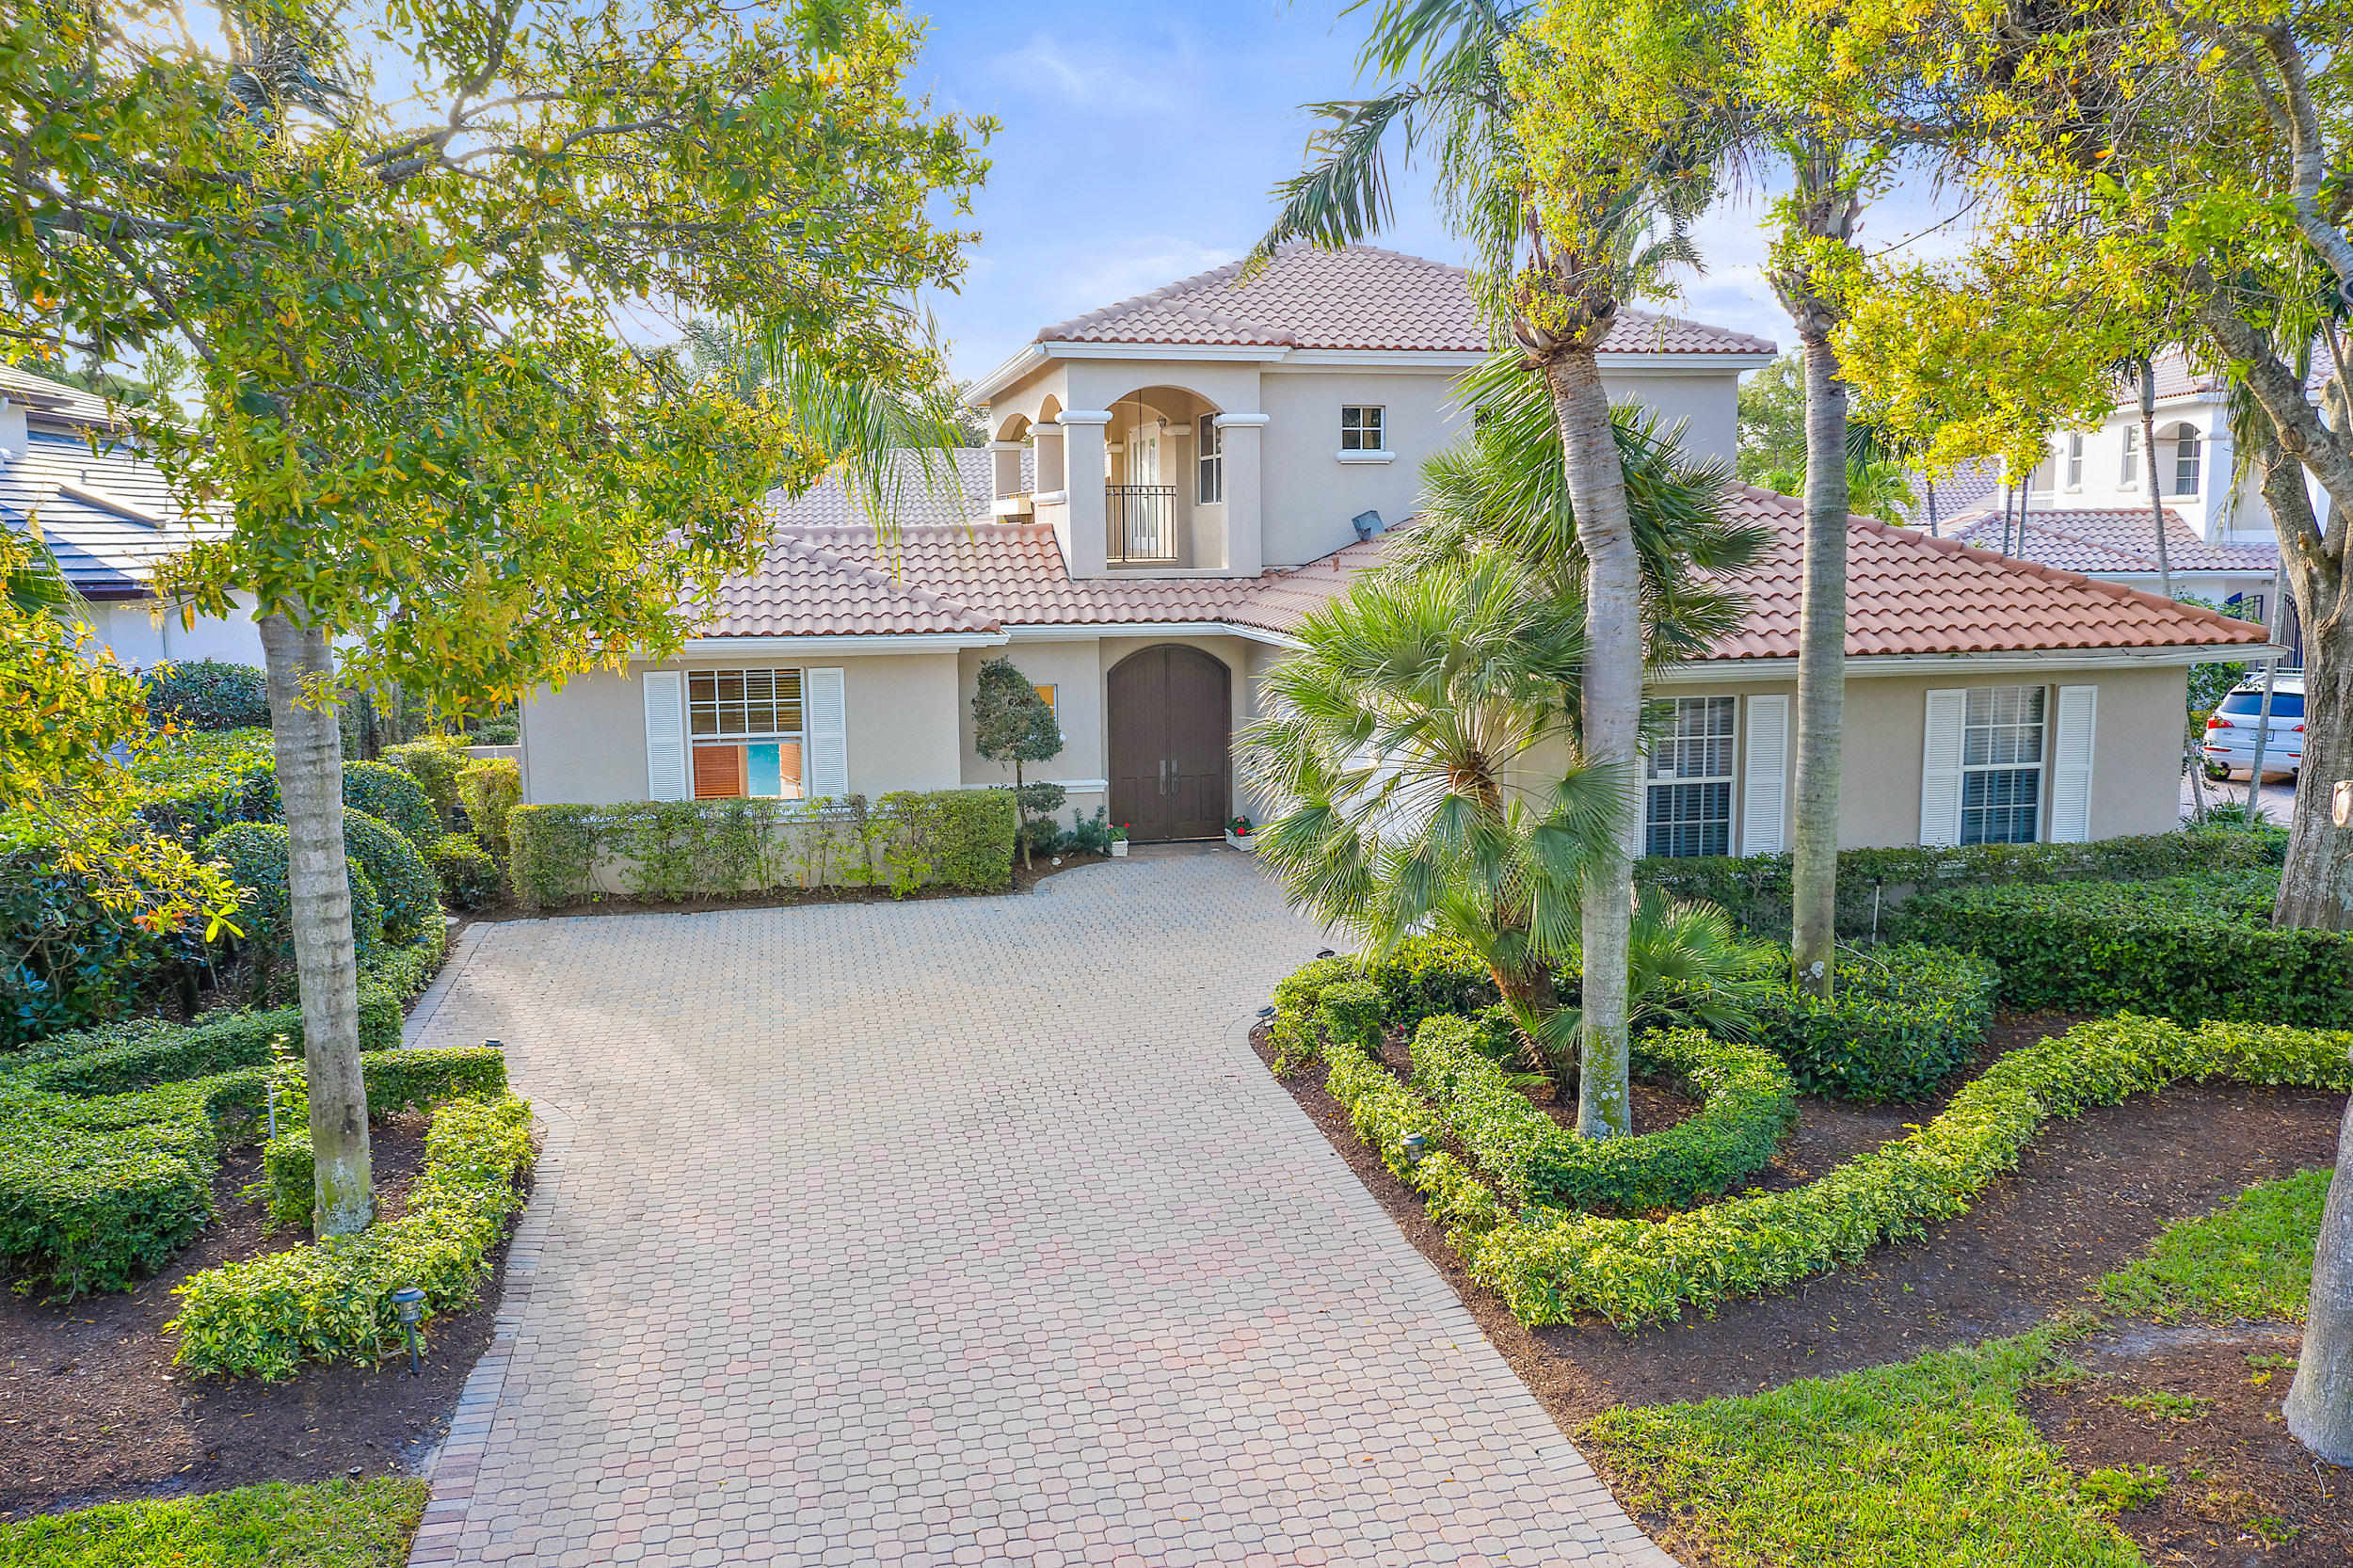 New Home for sale at 132 Village Way in Jupiter